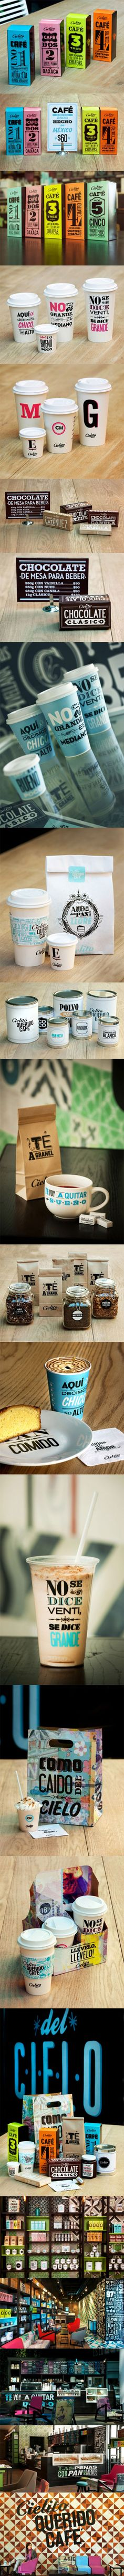 CIELITO ® - Lovely Package - great cafe branding and design